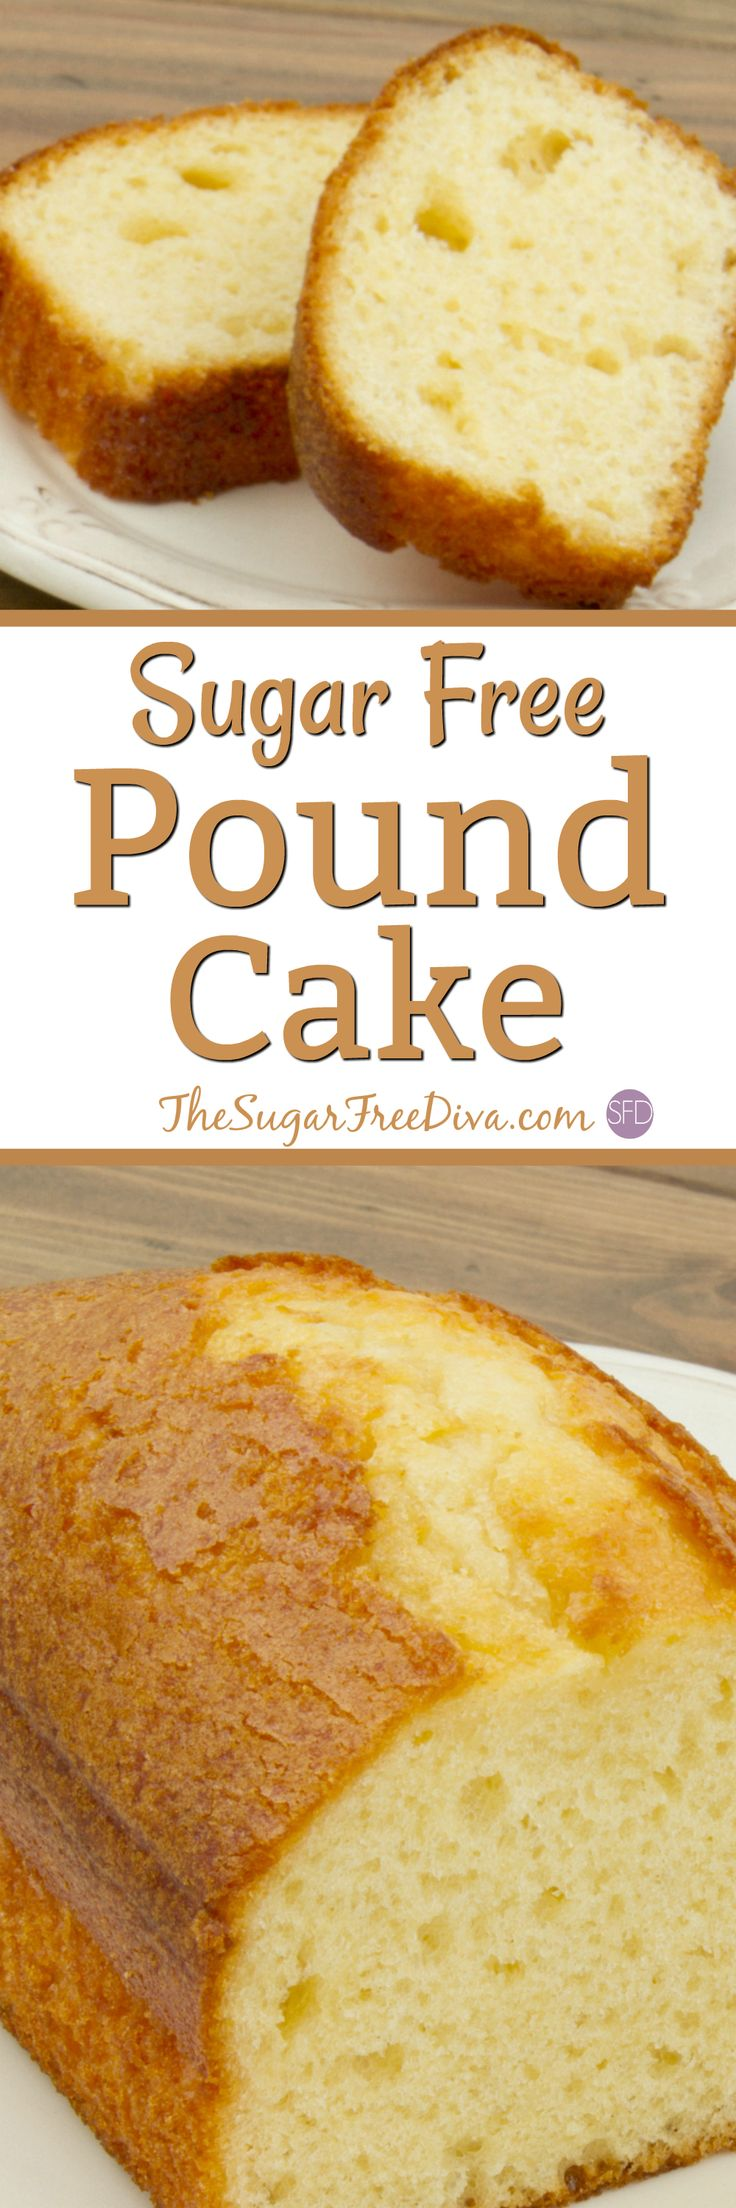 This recipe for pound cake is a sugar free recipe that tastes delicious as well. I love that this is the perfect cake for snack or a dessert too!!